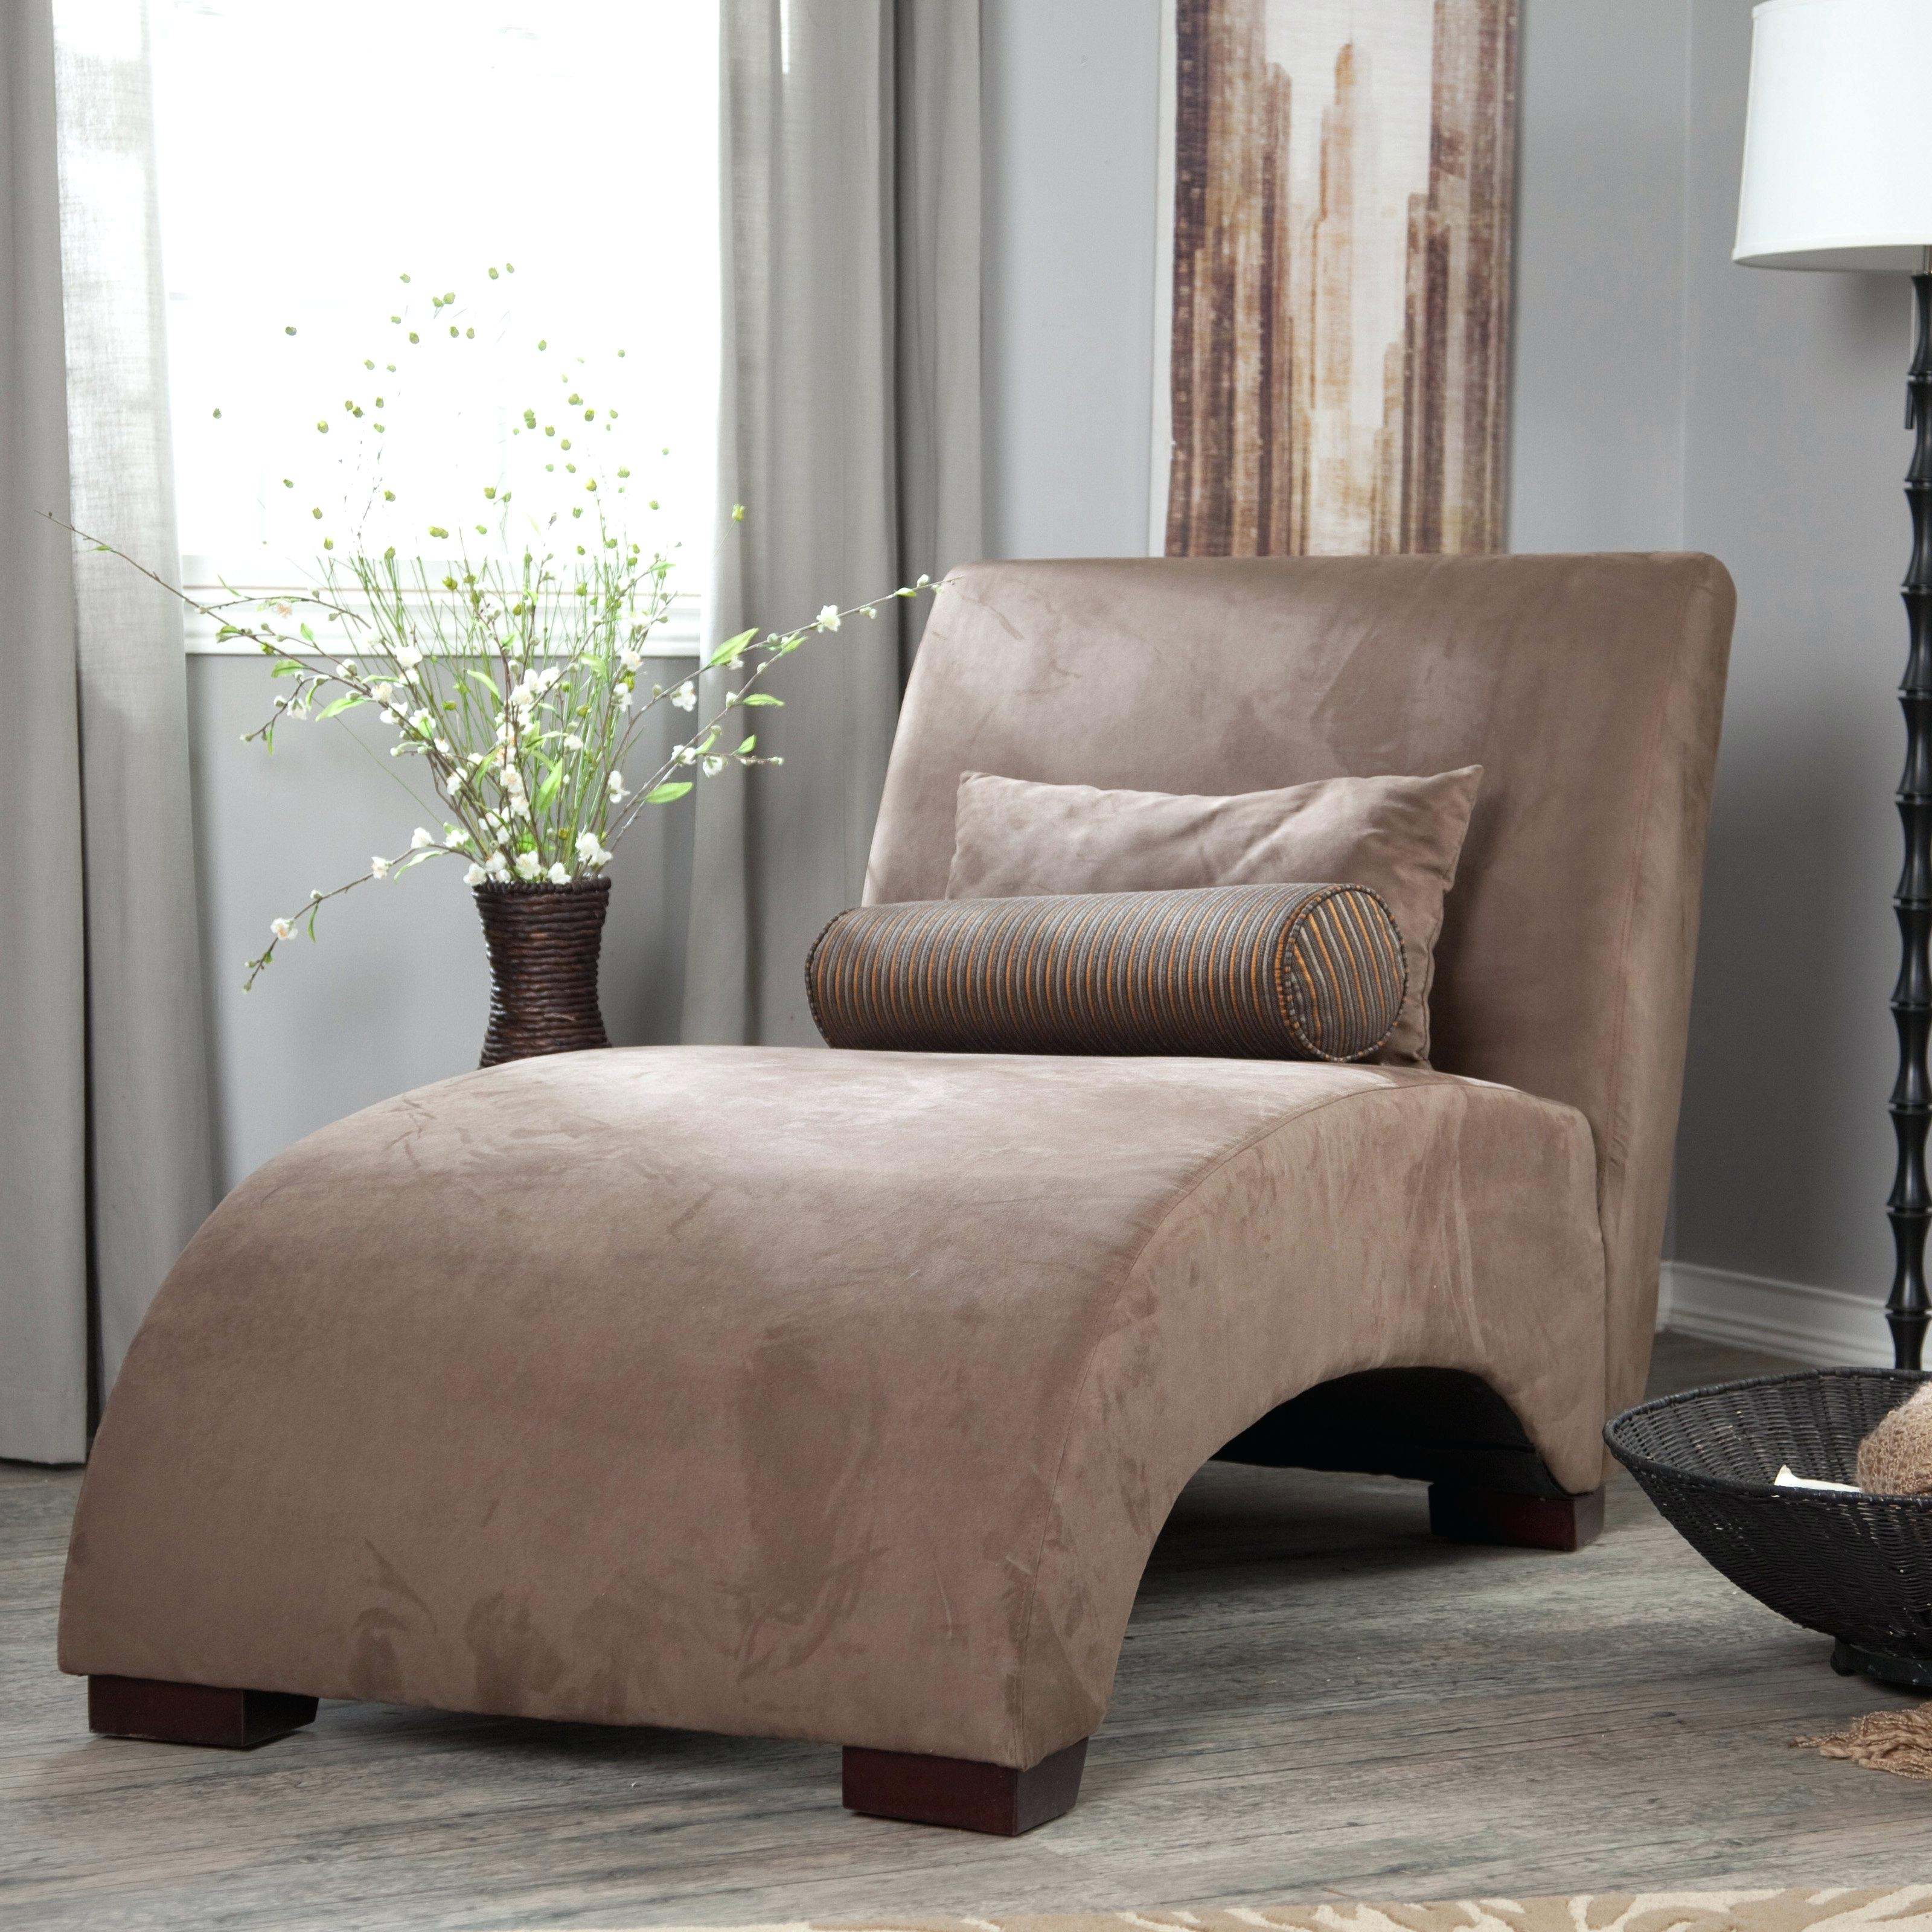 Widely Used Armless Lounge Chair Slipcovers • Lounge Chairs Ideas With Regard To Chaise Lounge Chairs With Arms Slipcover (View 14 of 15)